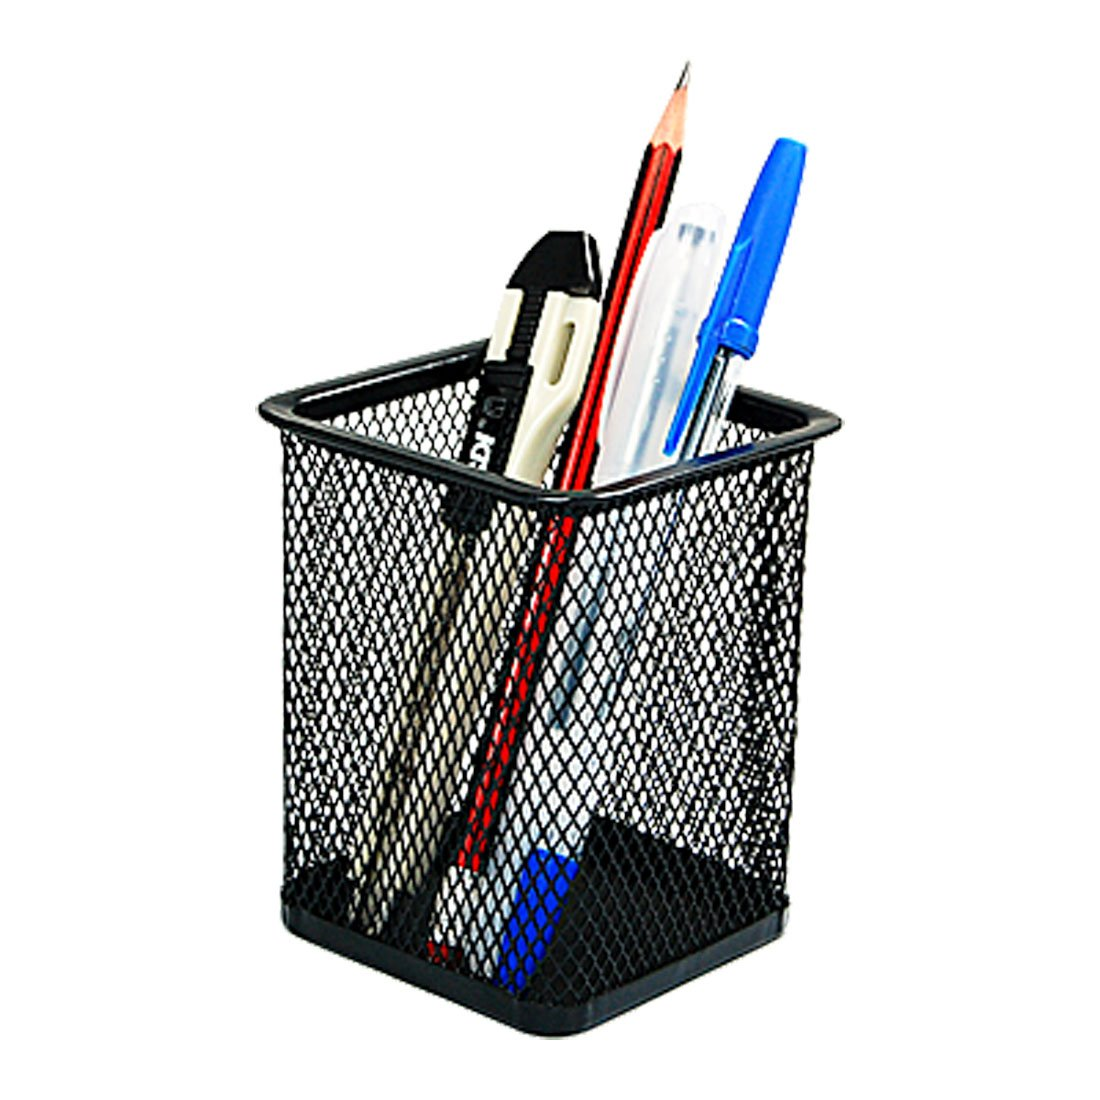 Amazon.com : Painted Iron Wire Mesh Pen Holder/Container, Black ...